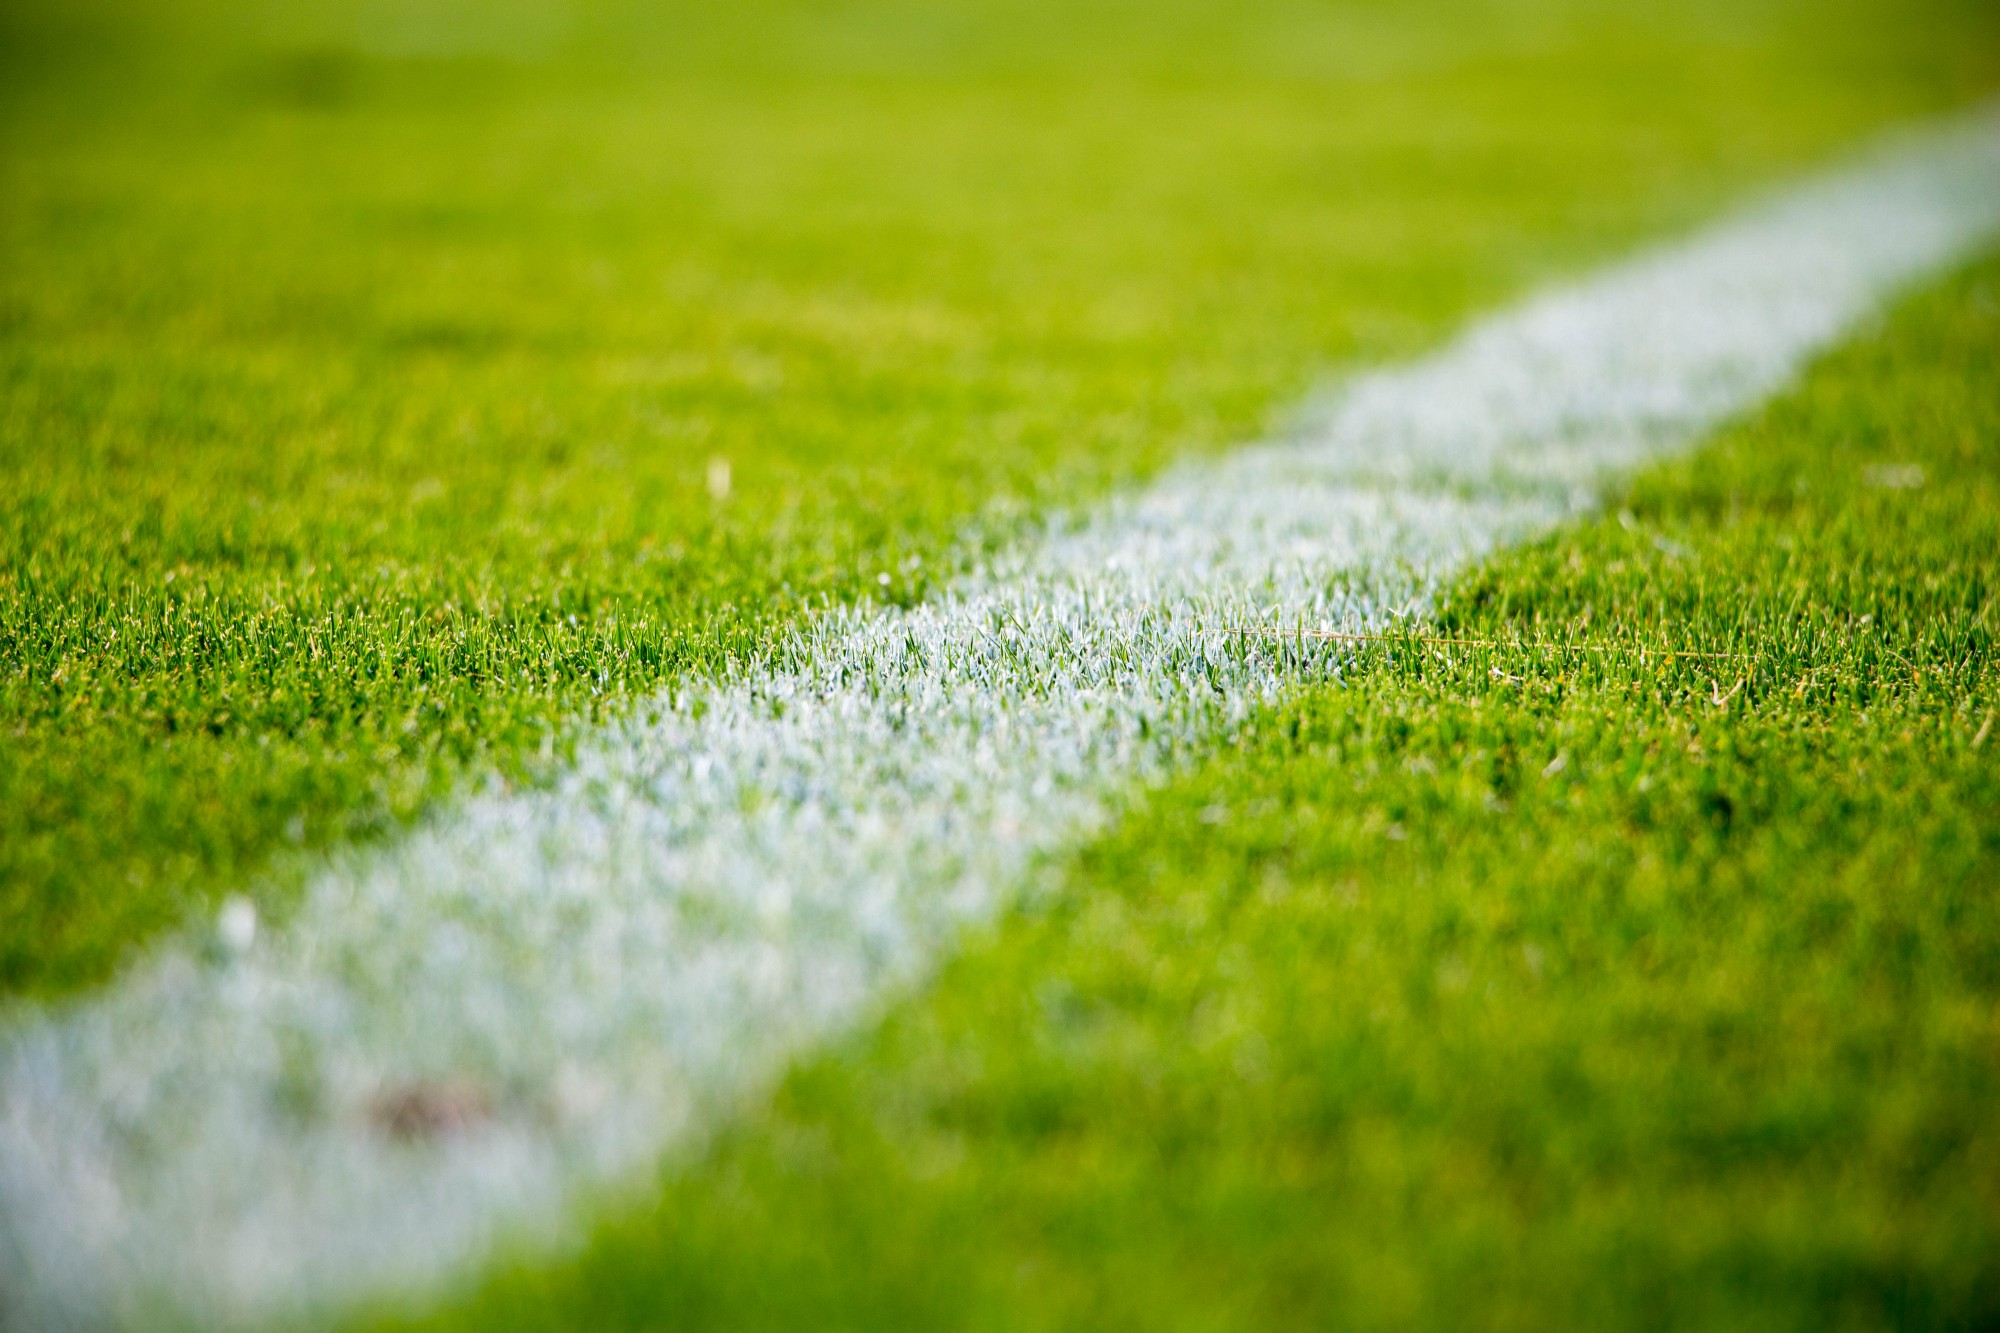 Close-up of grassy sports field.